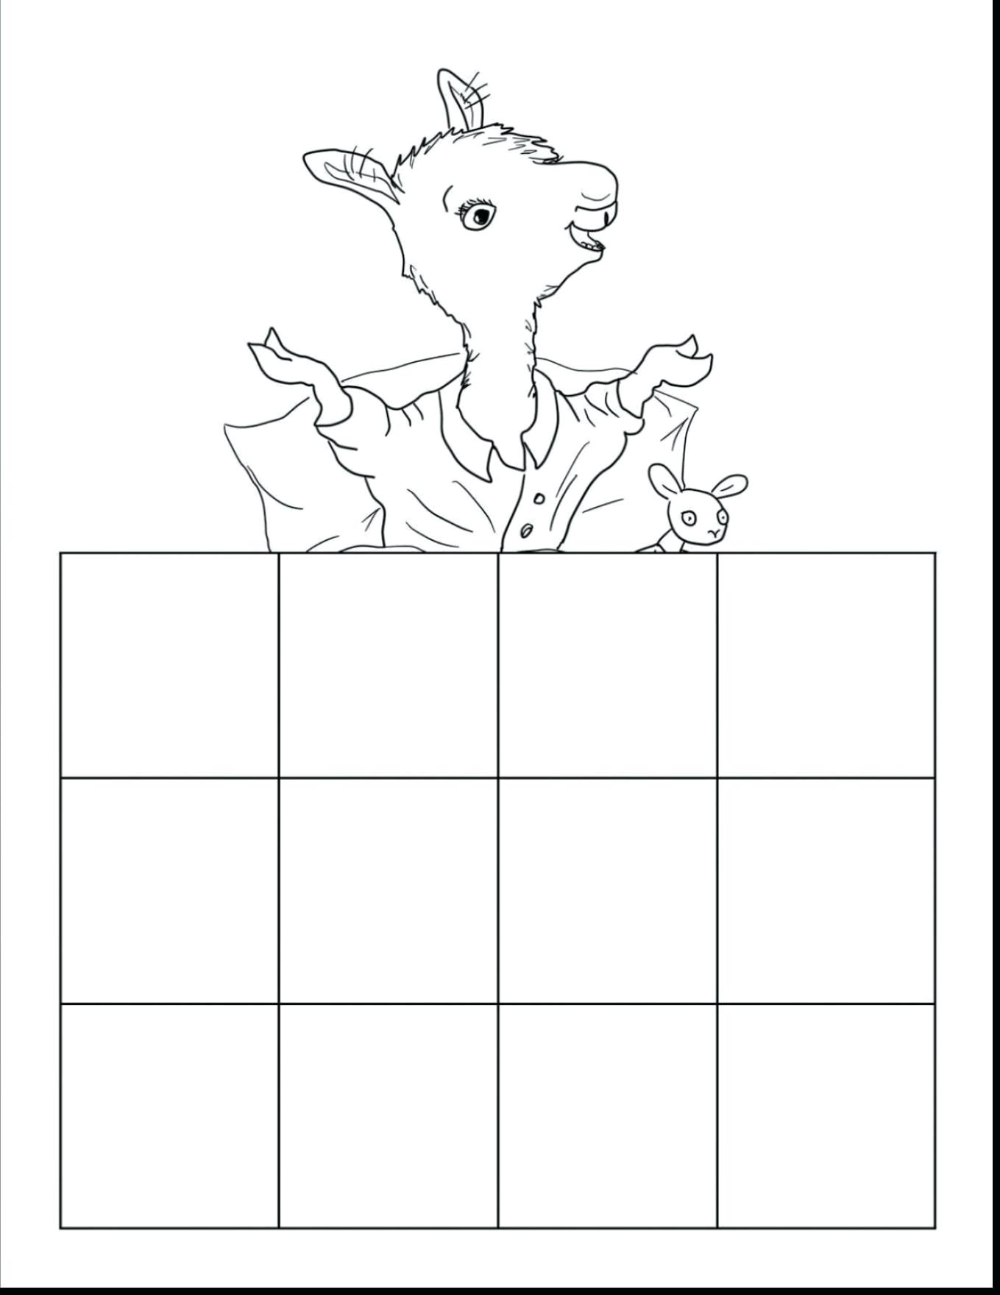 Llama Red Pajama Coloring Page From Category Communitize Co